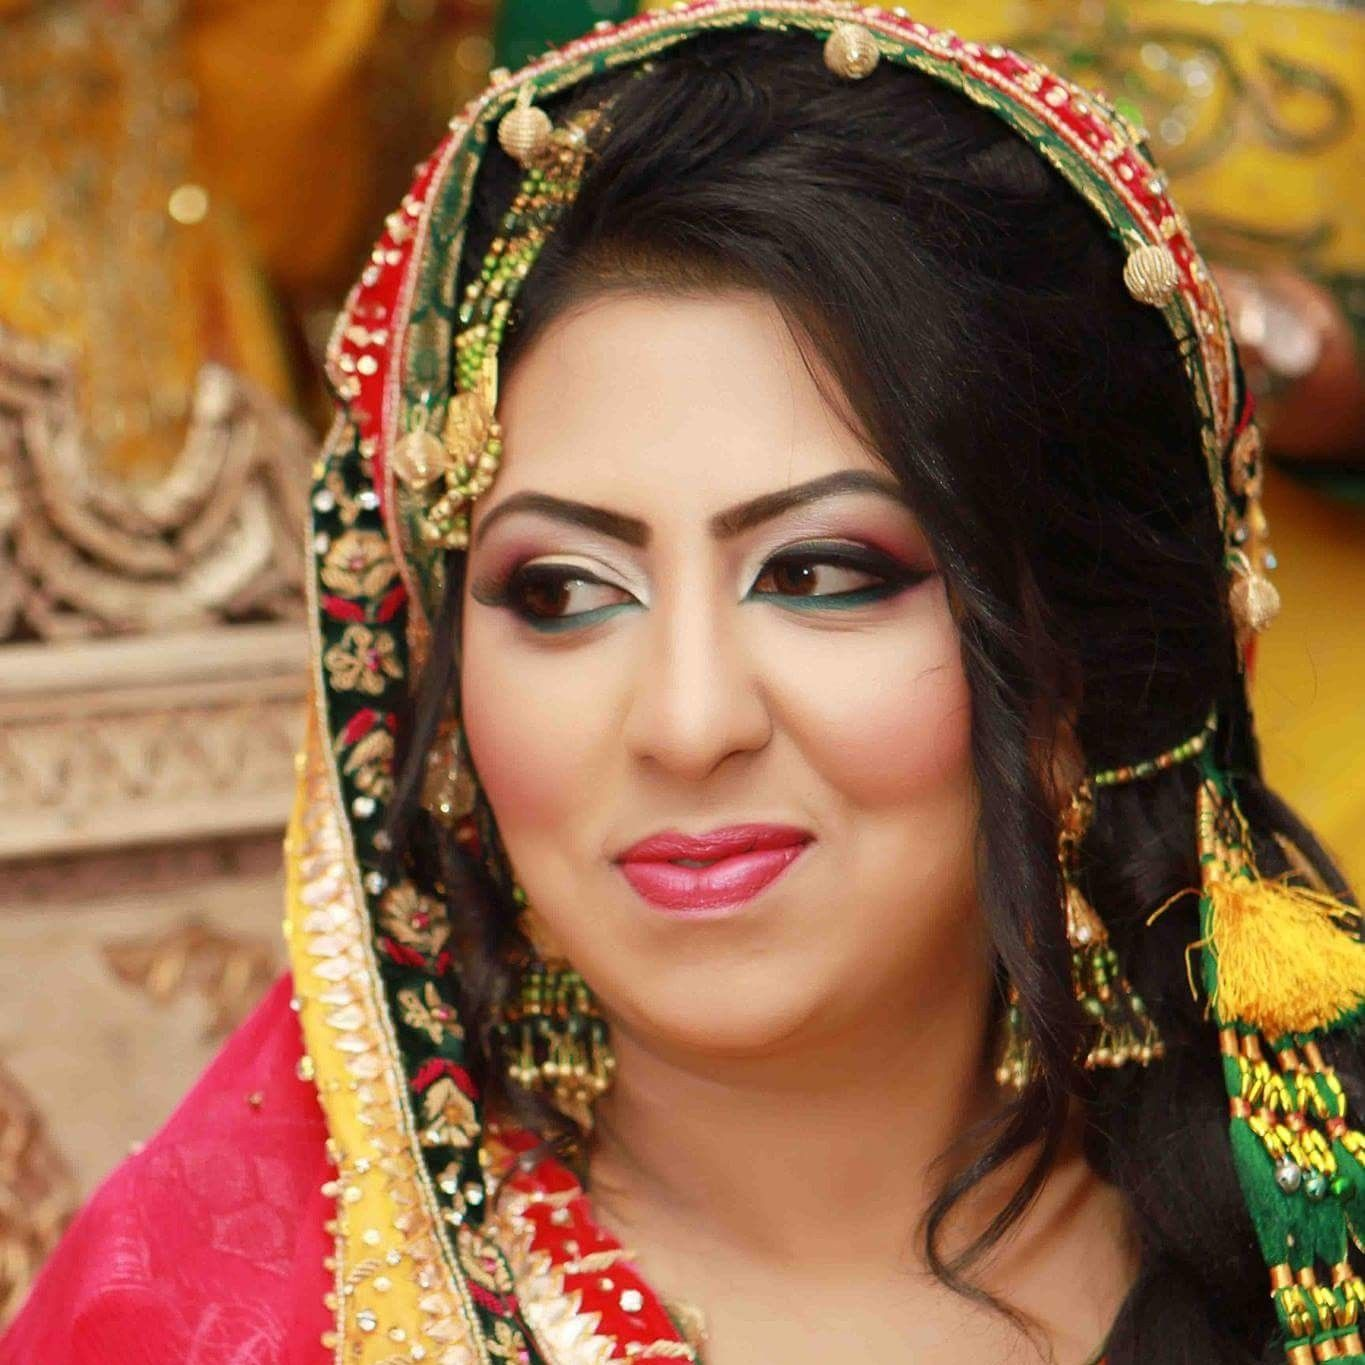 Asian Wedding Food Caterers: Asian Wedding Photography Birmingham Videography And